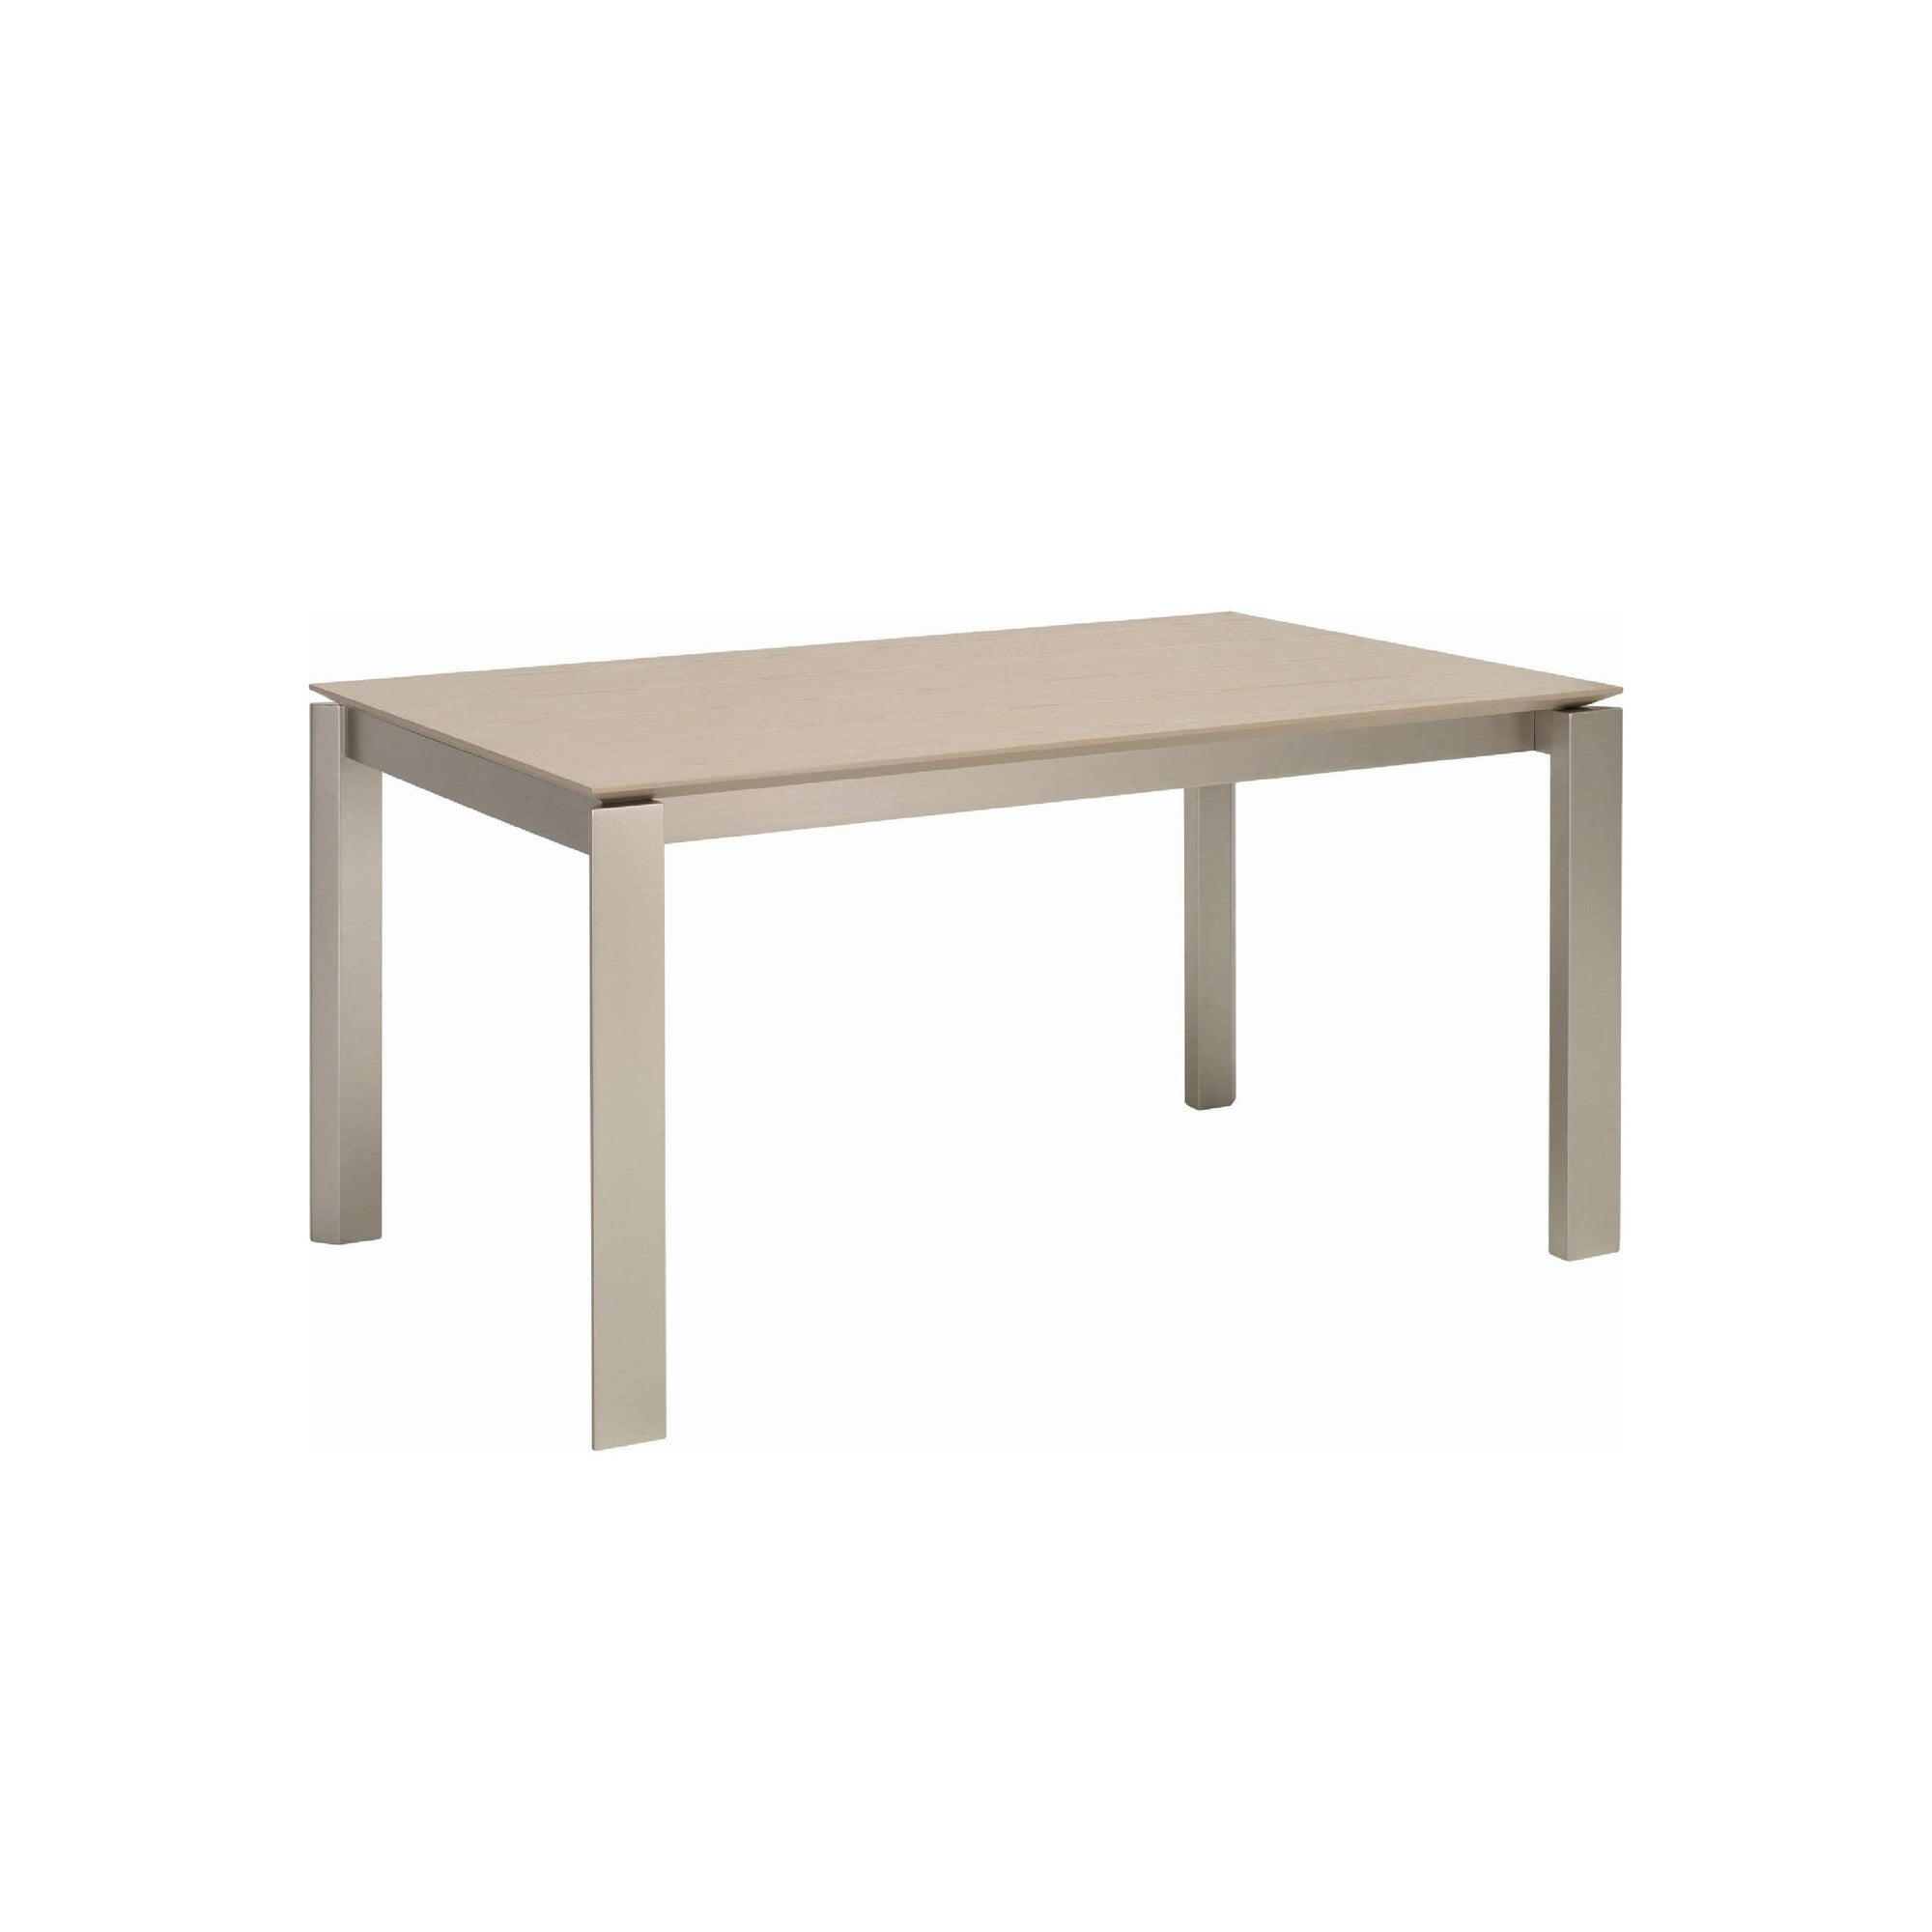 ELWOOD 1.5m Dining Table in Metalic Colour Leg, Taupe Grey Colour Top